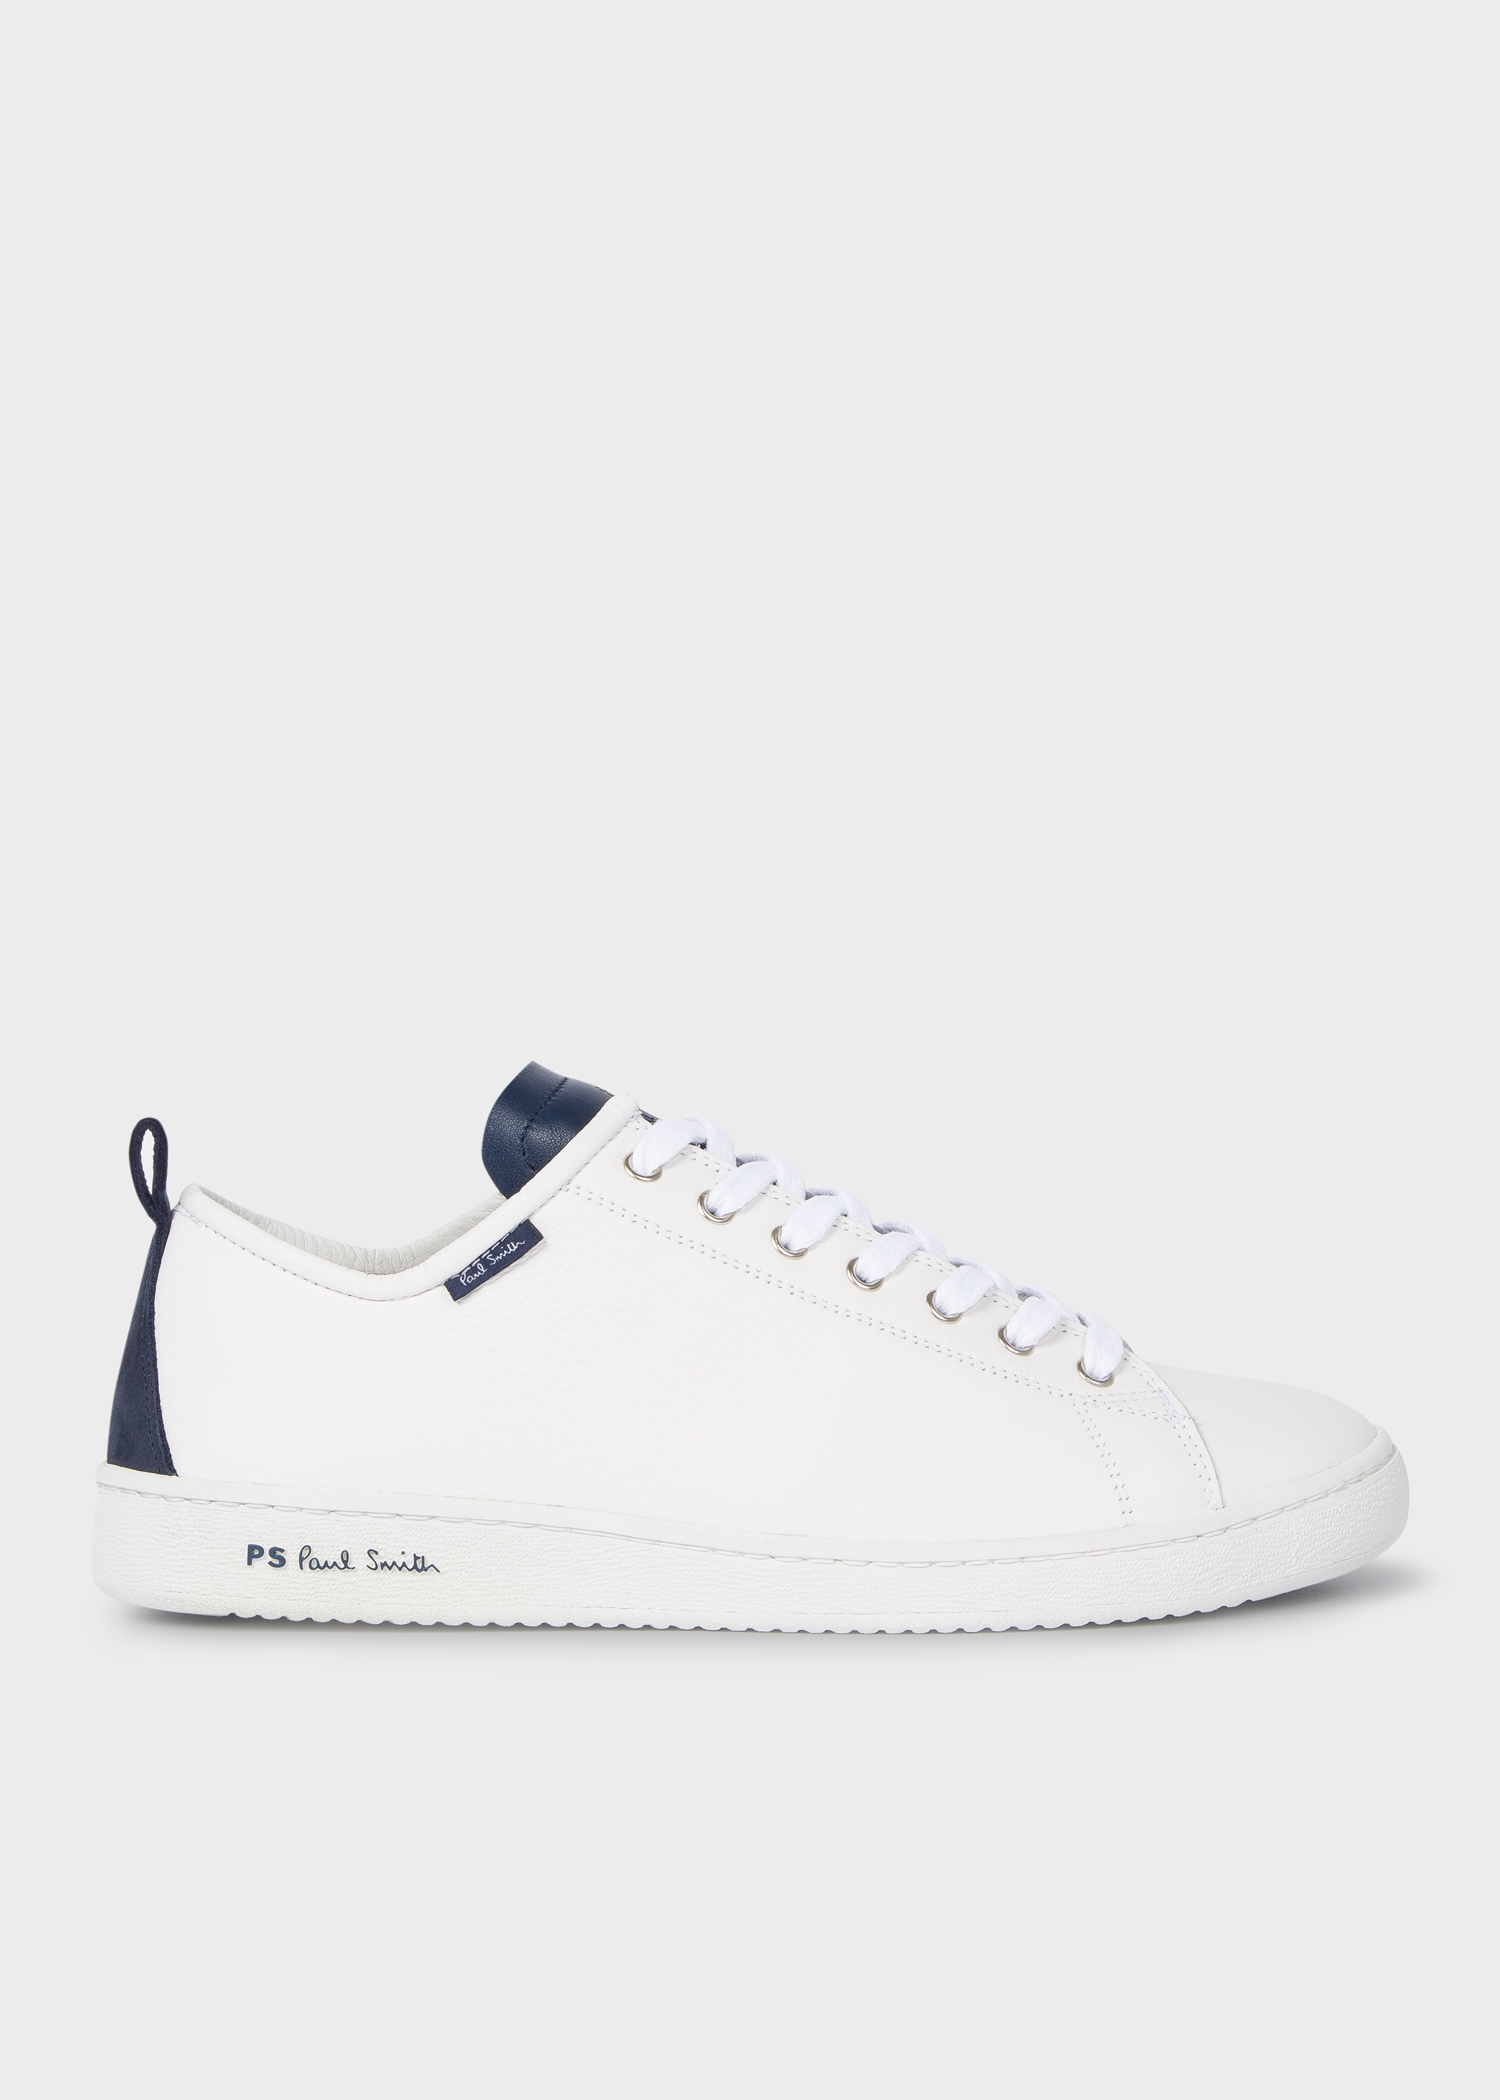 43f790cef8 Men's White Calf Leather 'Miyata' Trainers With Navy Tongue